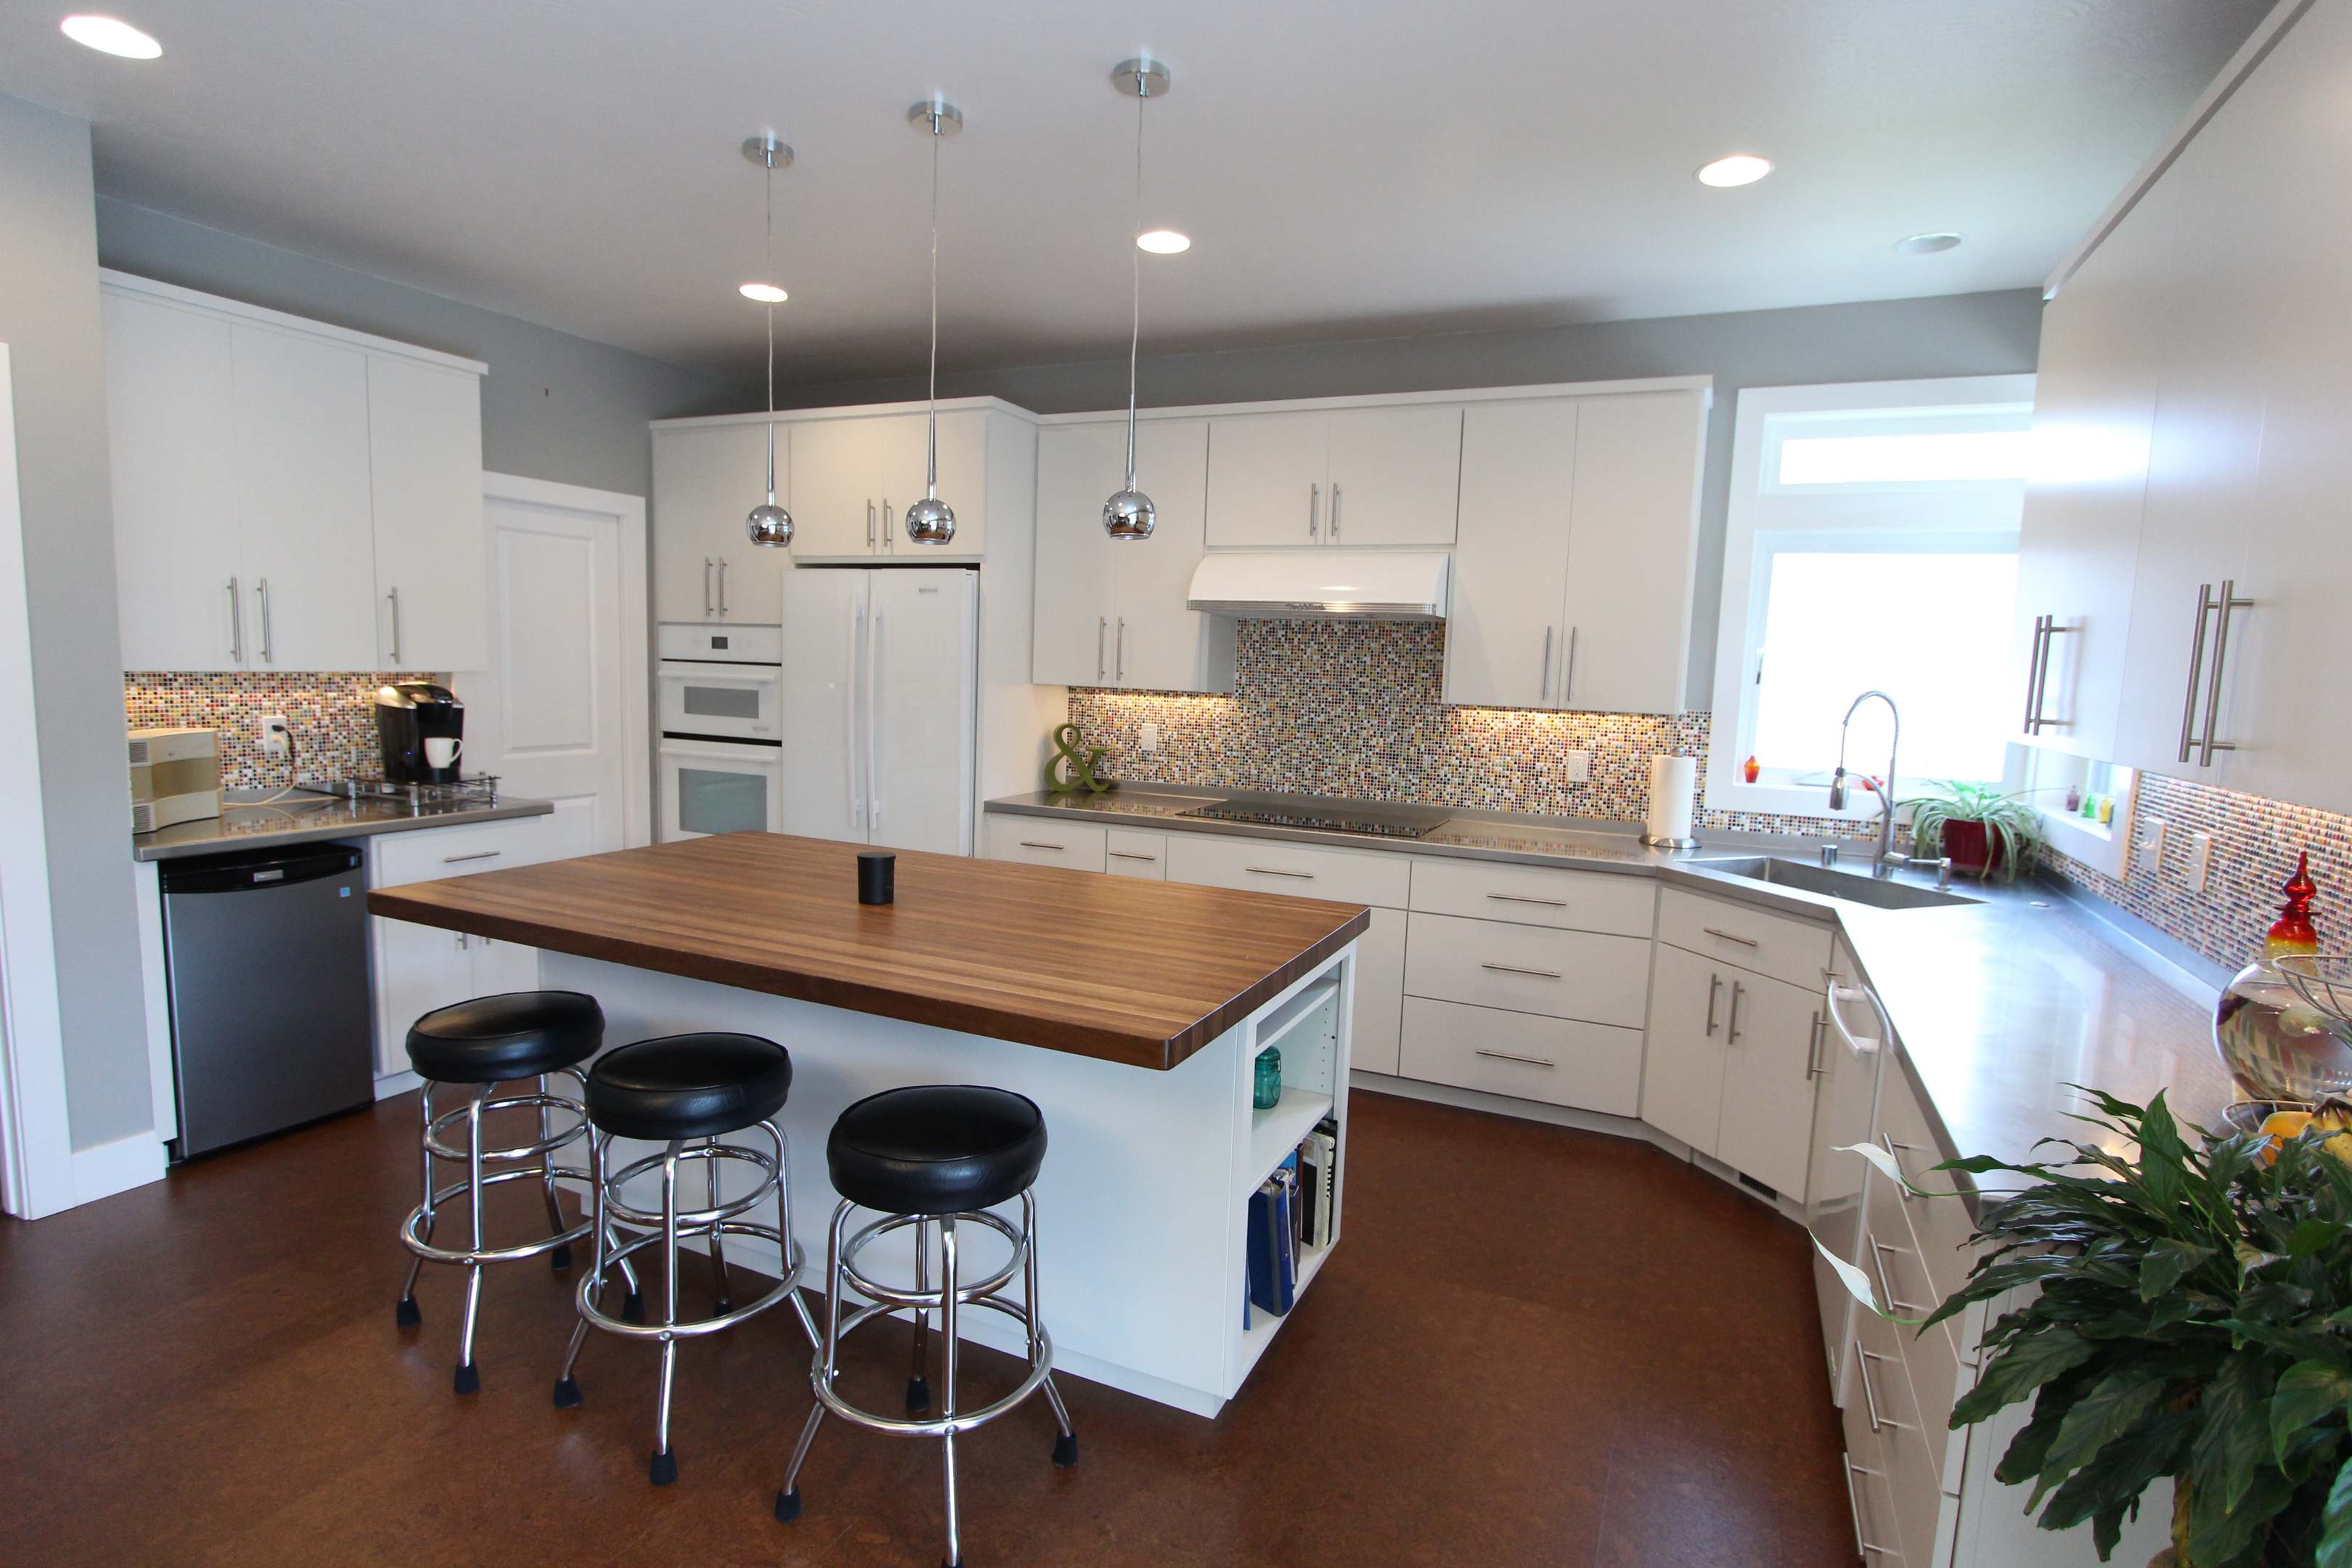 affordable custom cabinets showroom thumb kitchen contemporary style painted slab door island overhang corner sink retro all one height full